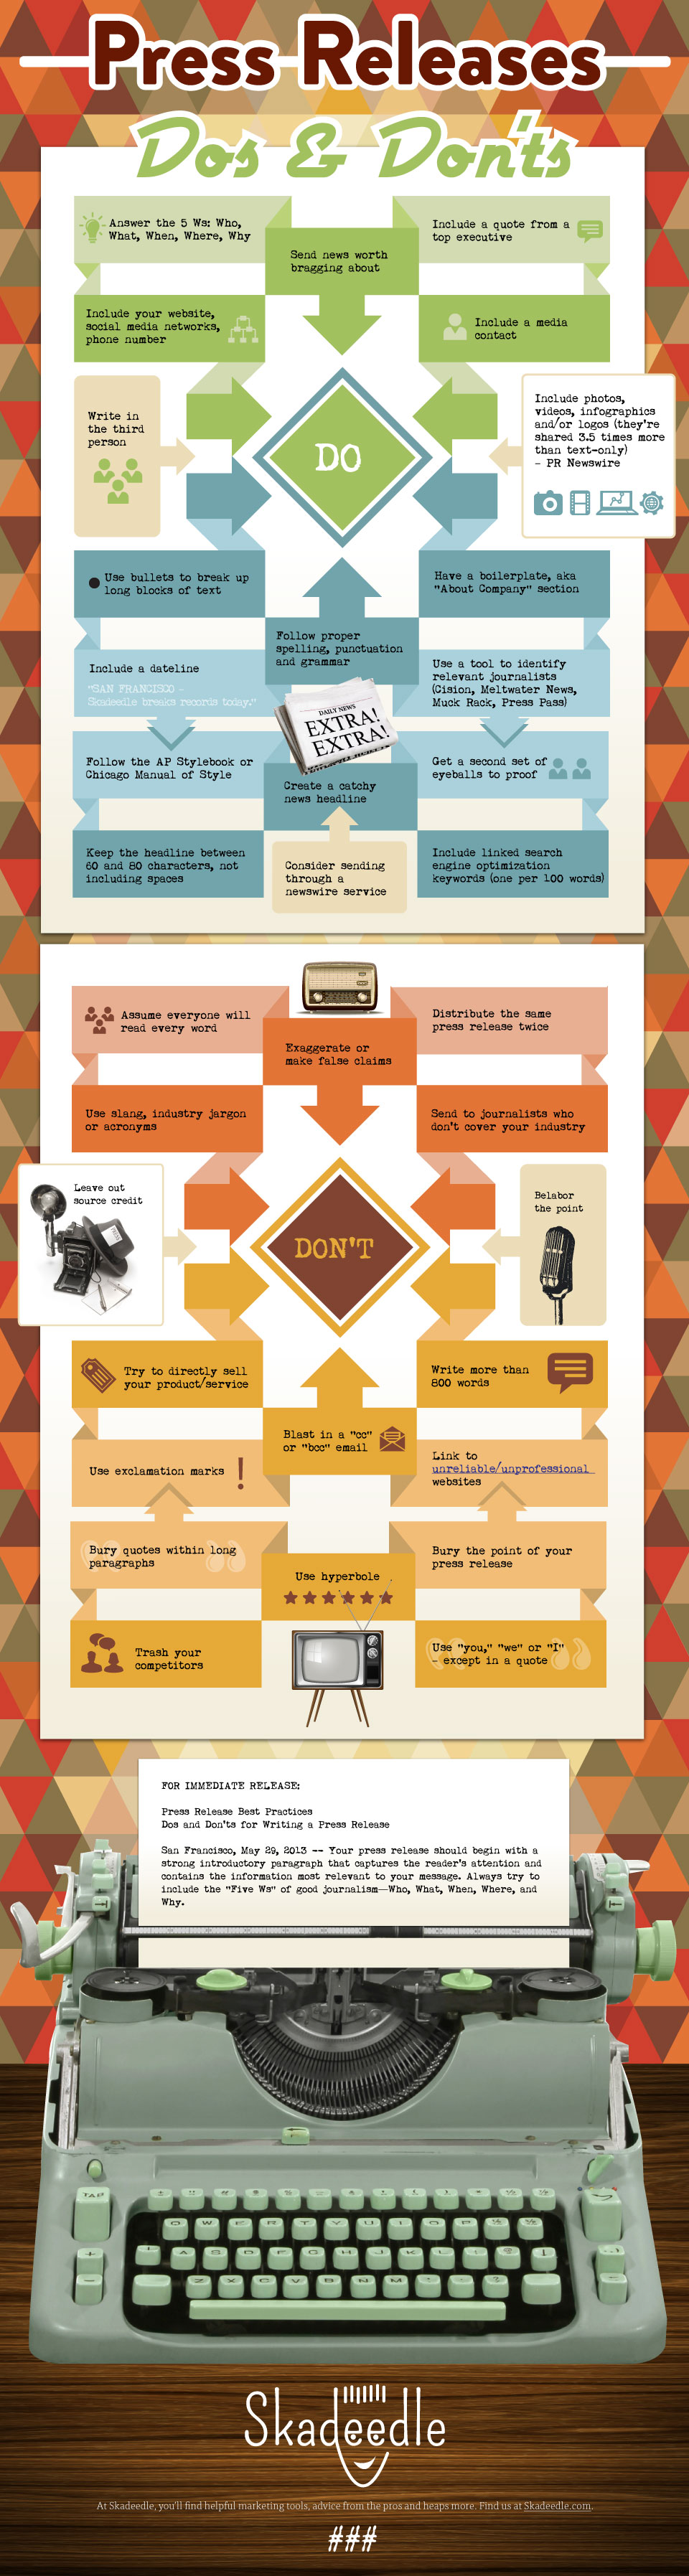 Press Releases 101-Infographic